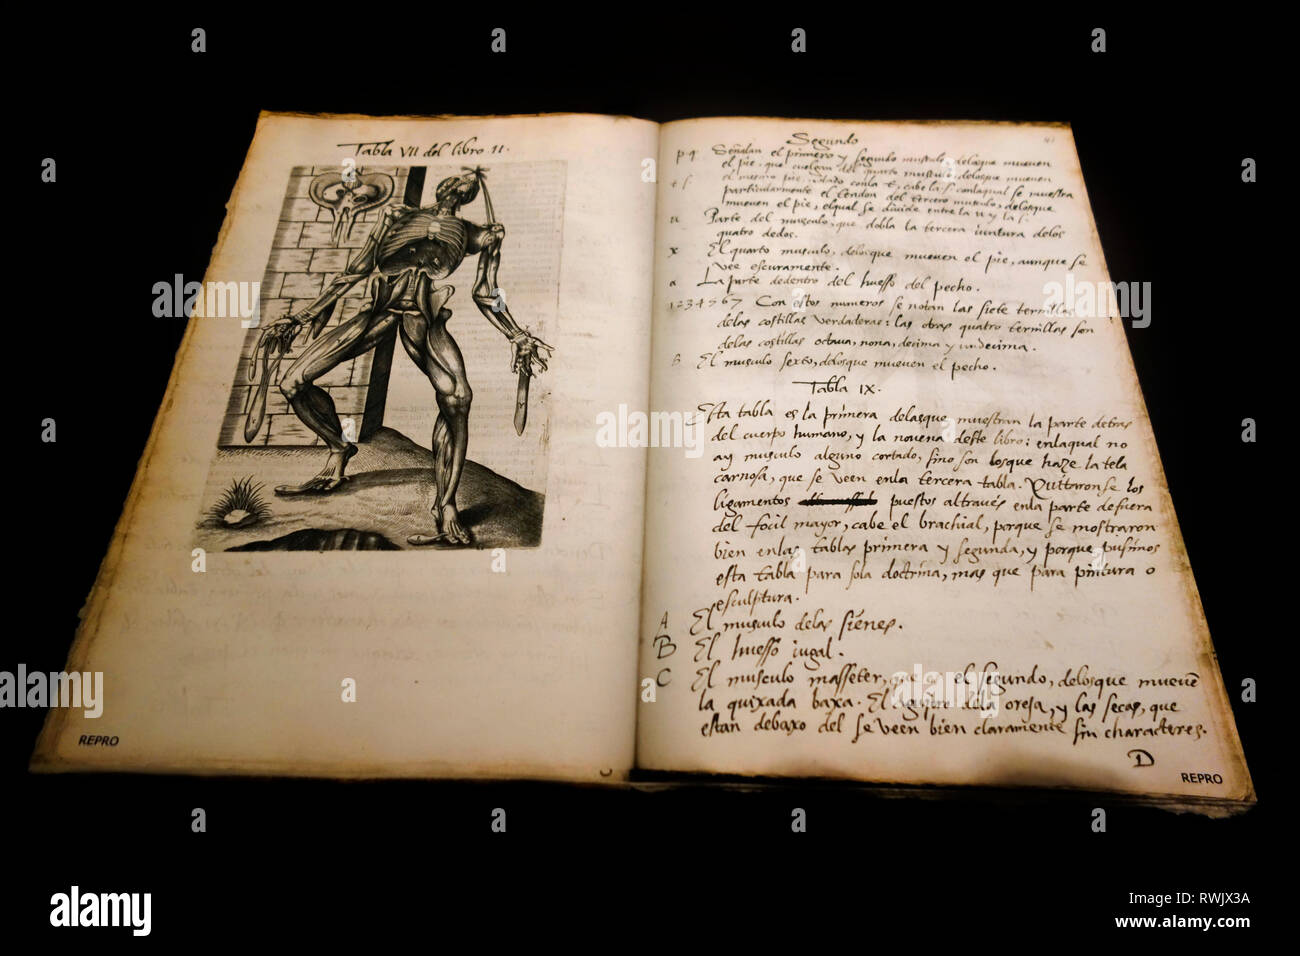 16th century Spanish translation of Vivae imagines partium corporis humani by Joannes Valverde, plagiarism of Fabrica by Vesalius, book about anatomy - Stock Image